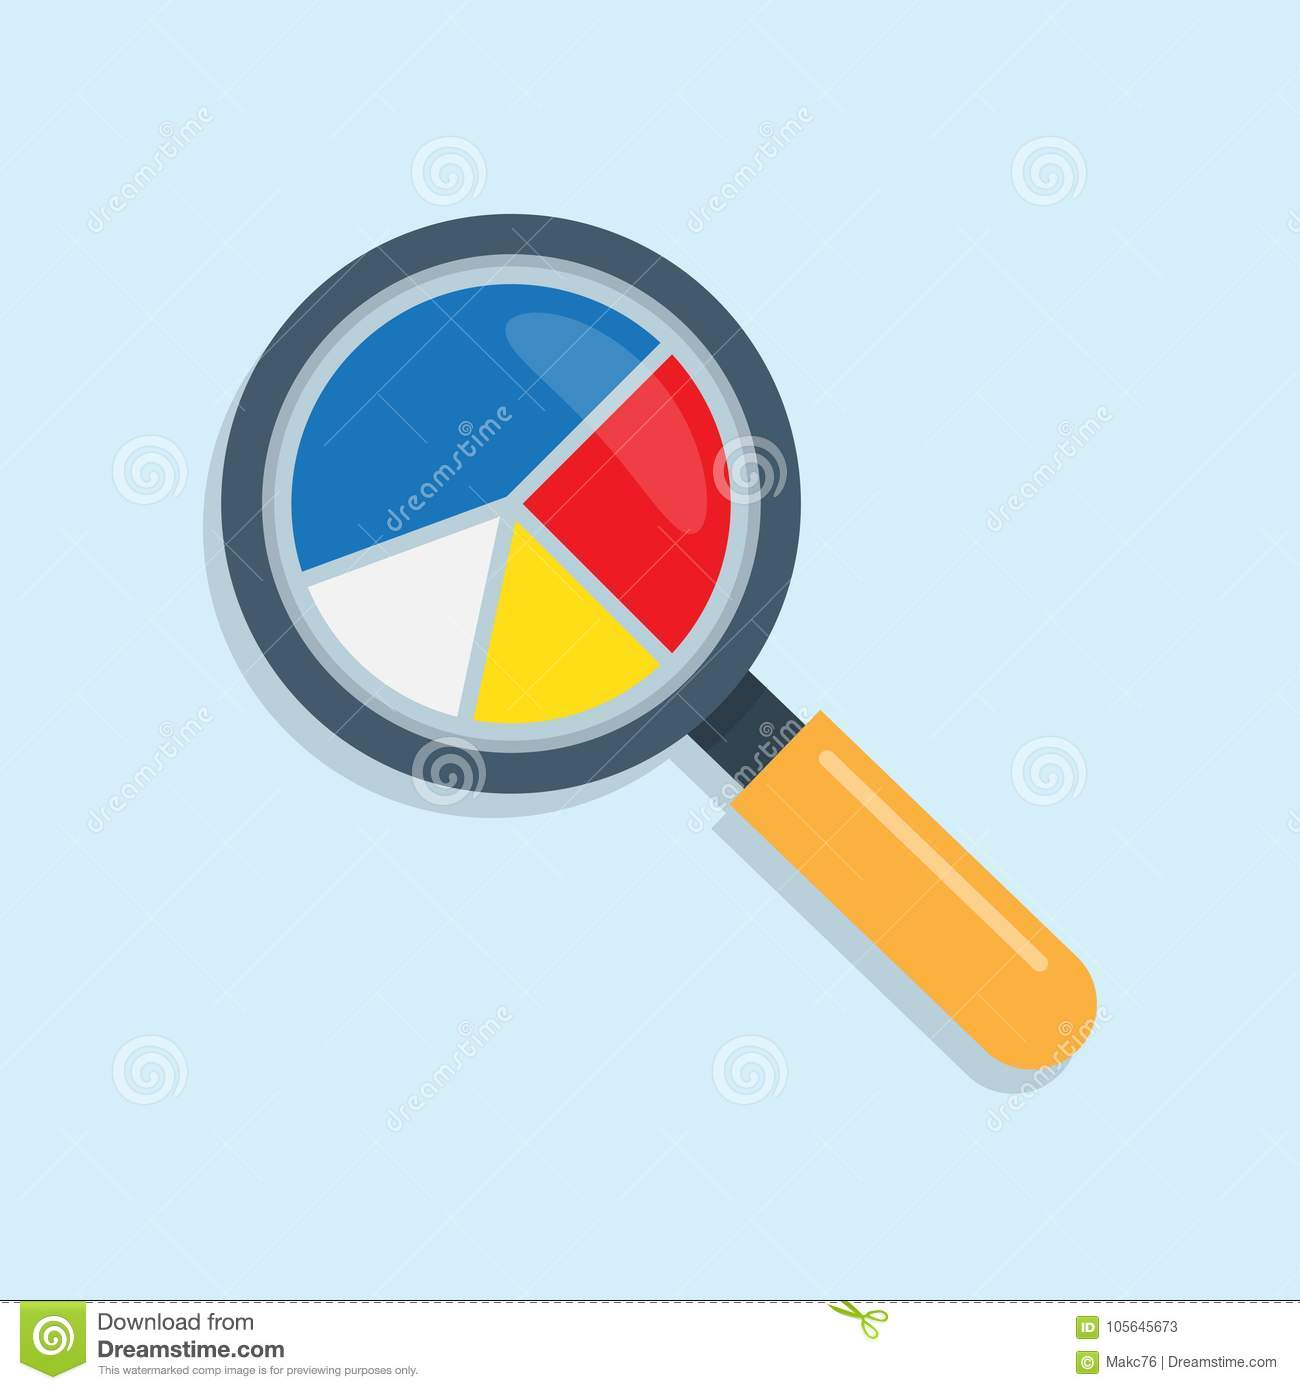 Marketing data analytics with magnifying glass icon and pie chart marketing data analytics with magnifying glass icon and pie chart nvjuhfo Image collections